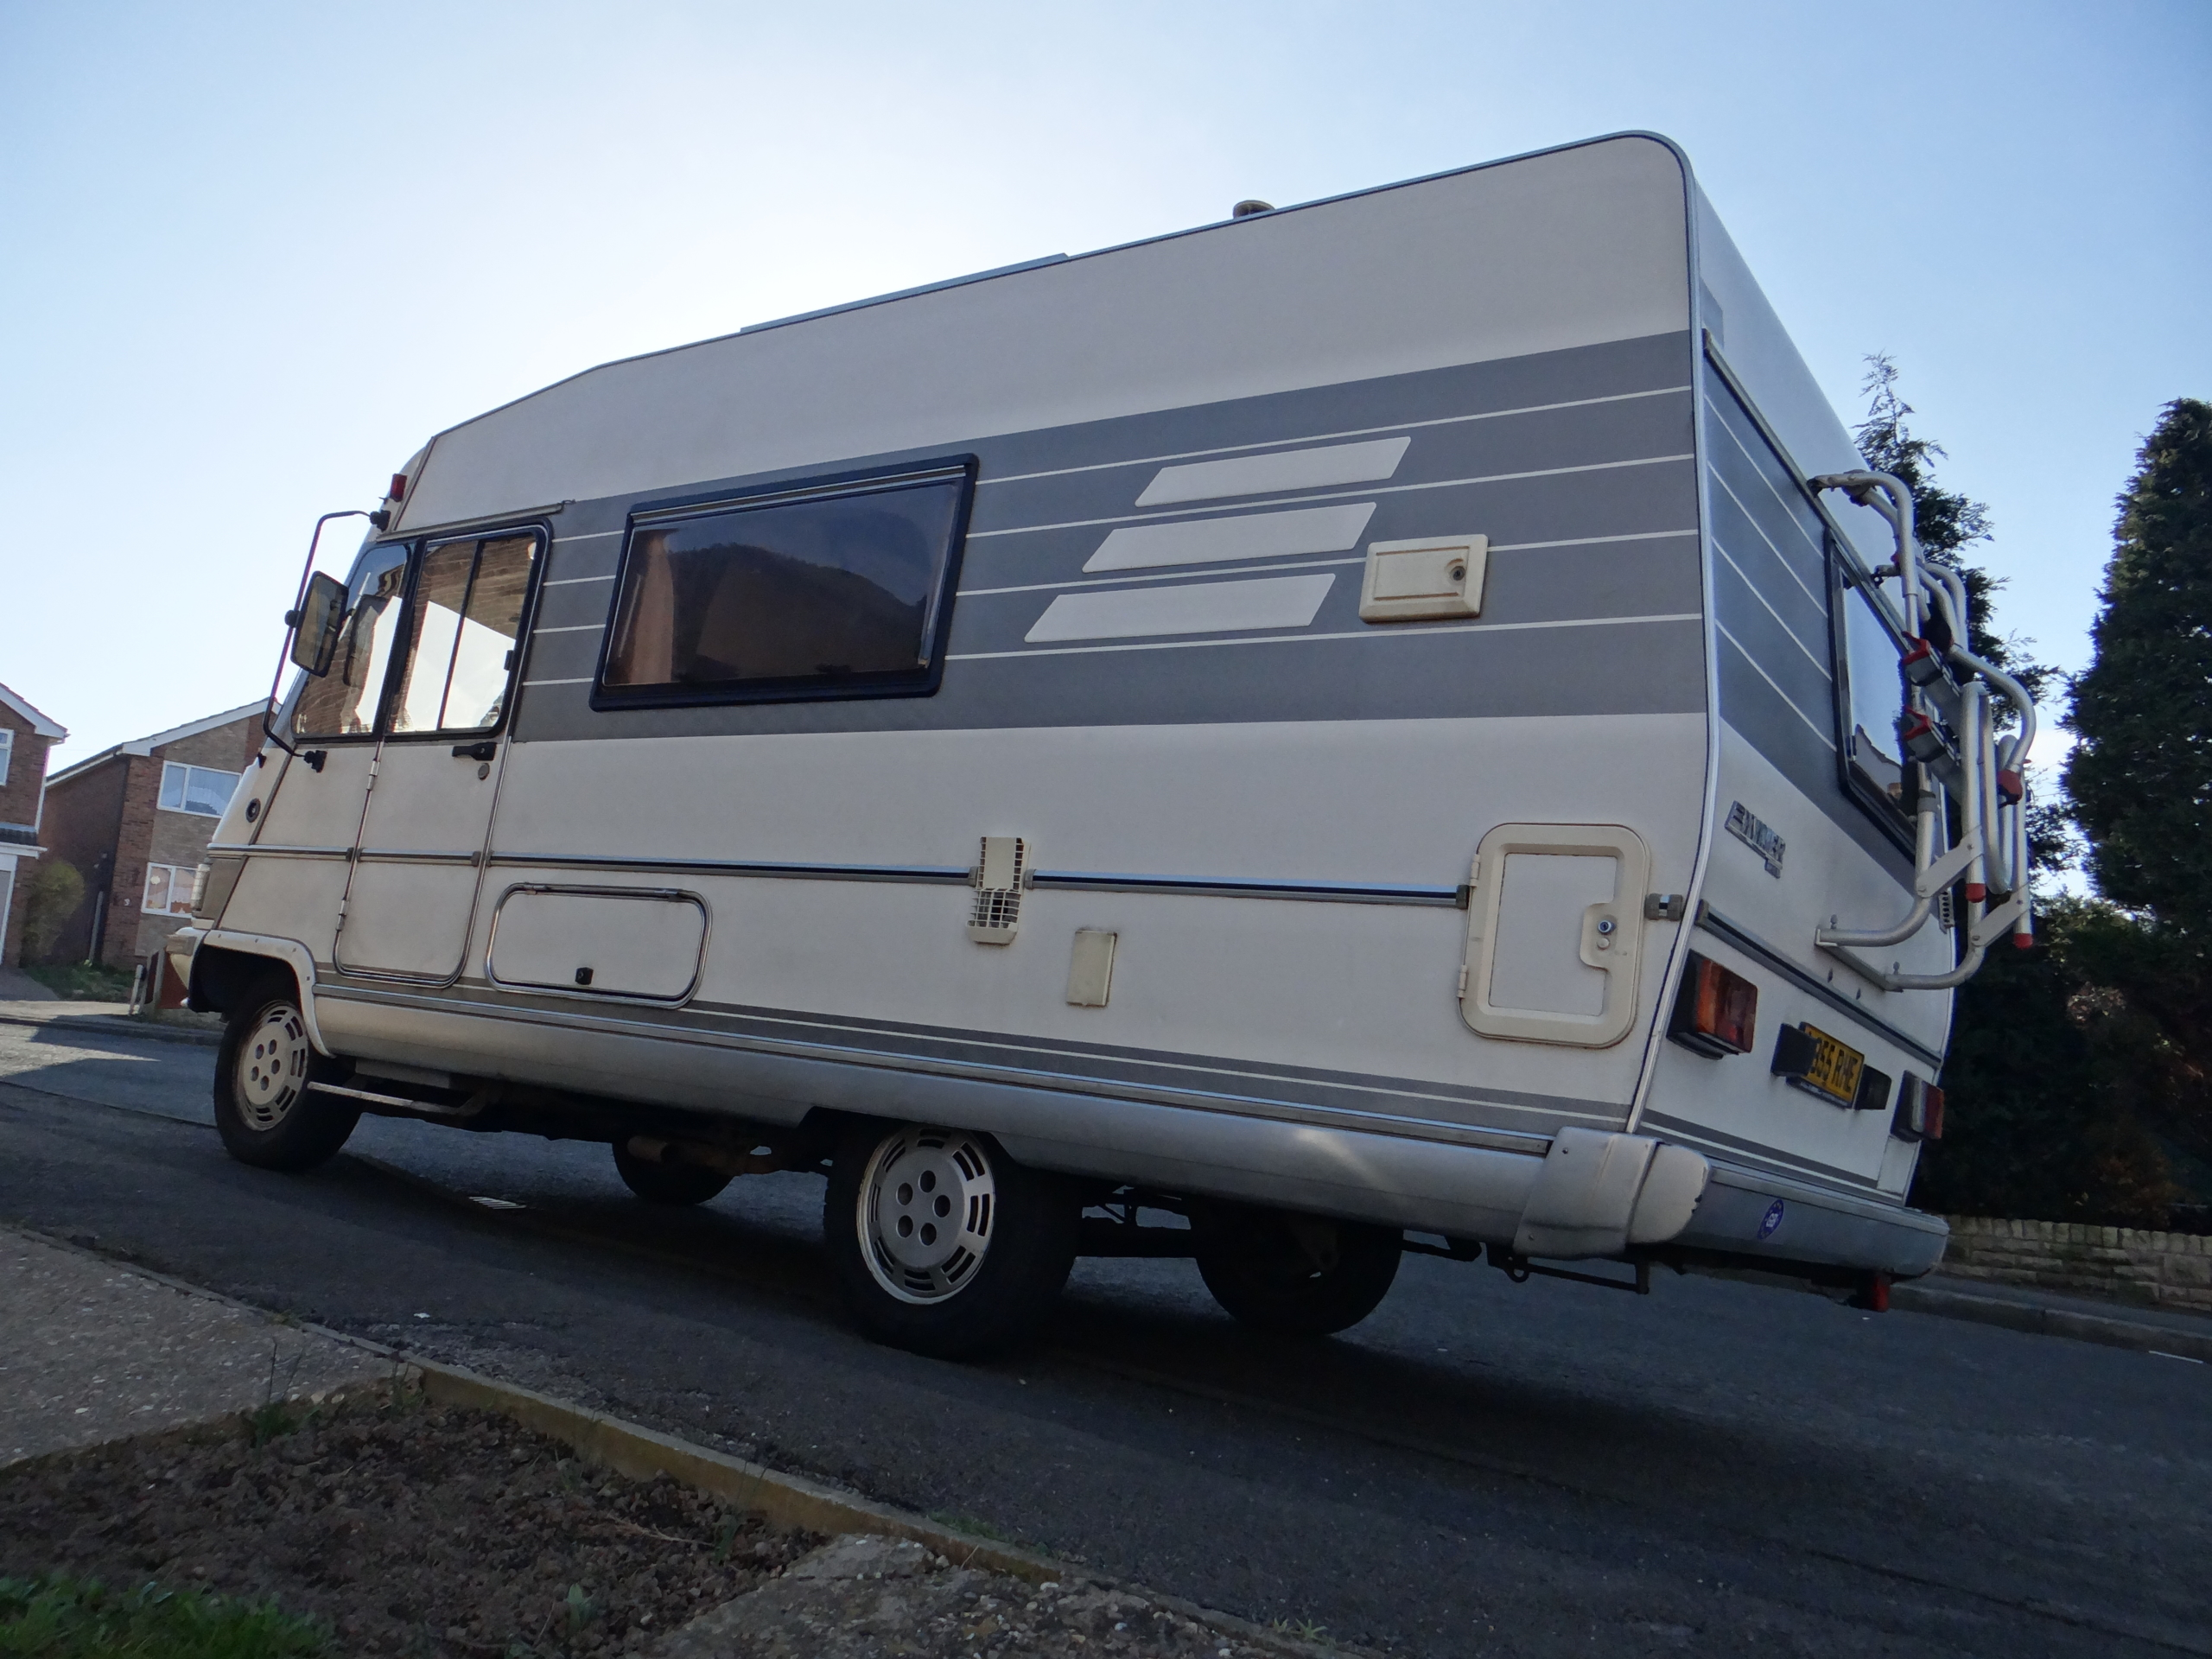 Hymer B544 Motorhome For Sale, Seeks New Loving Home - Our Tour